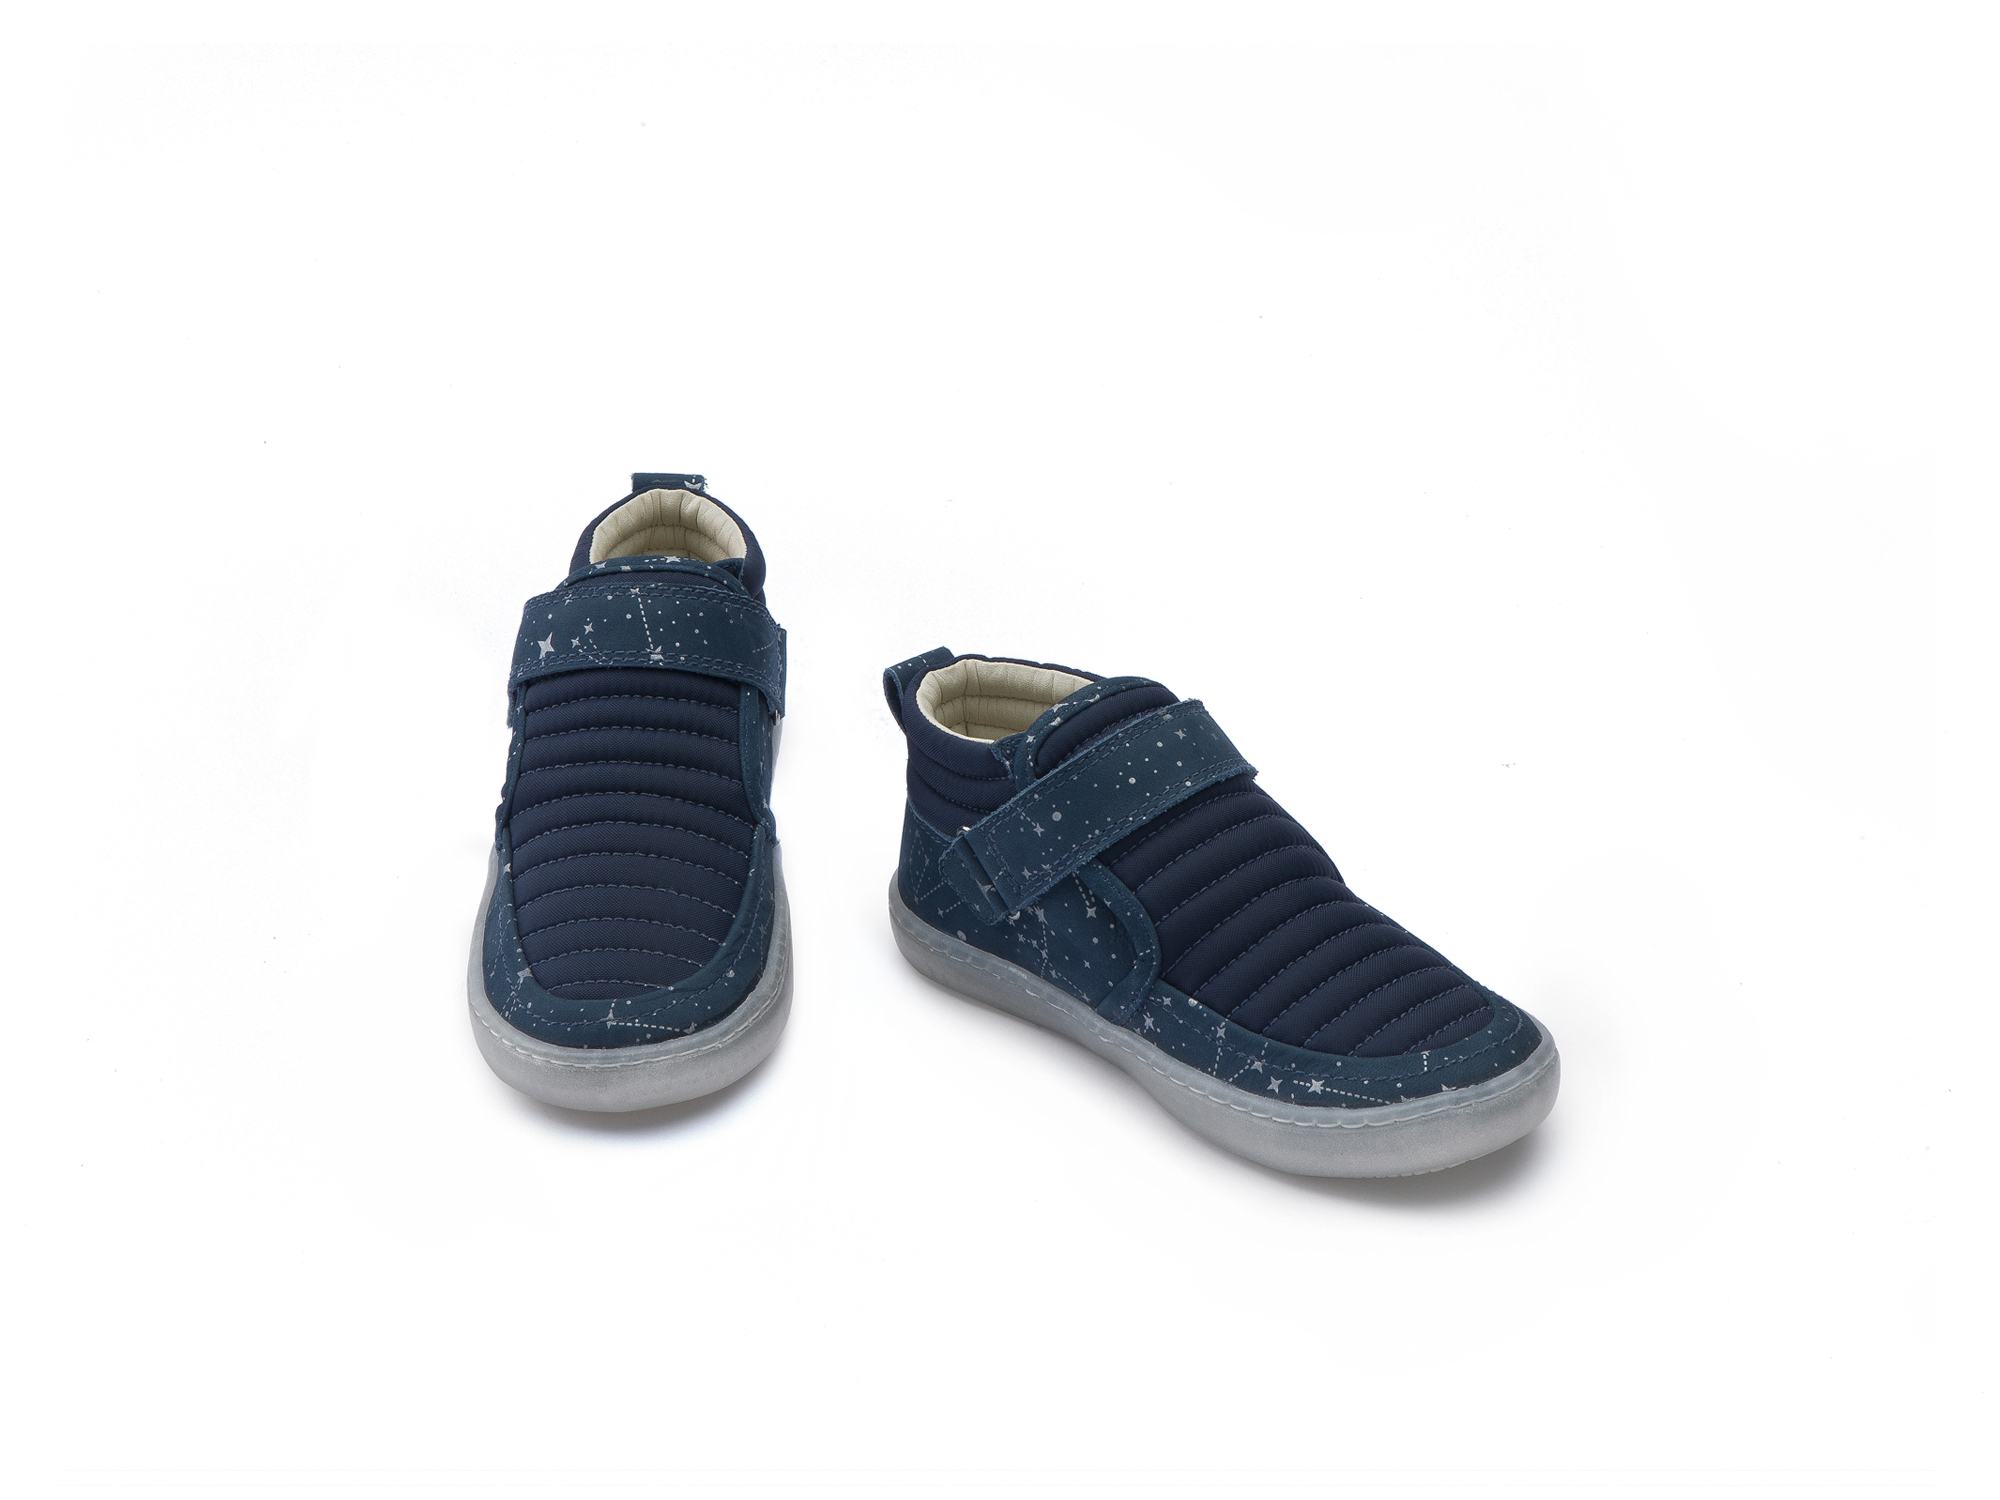 Bota Little Spacesuit Navy Nylon/ Blue Space Toddler 2 à 4 anos - 2